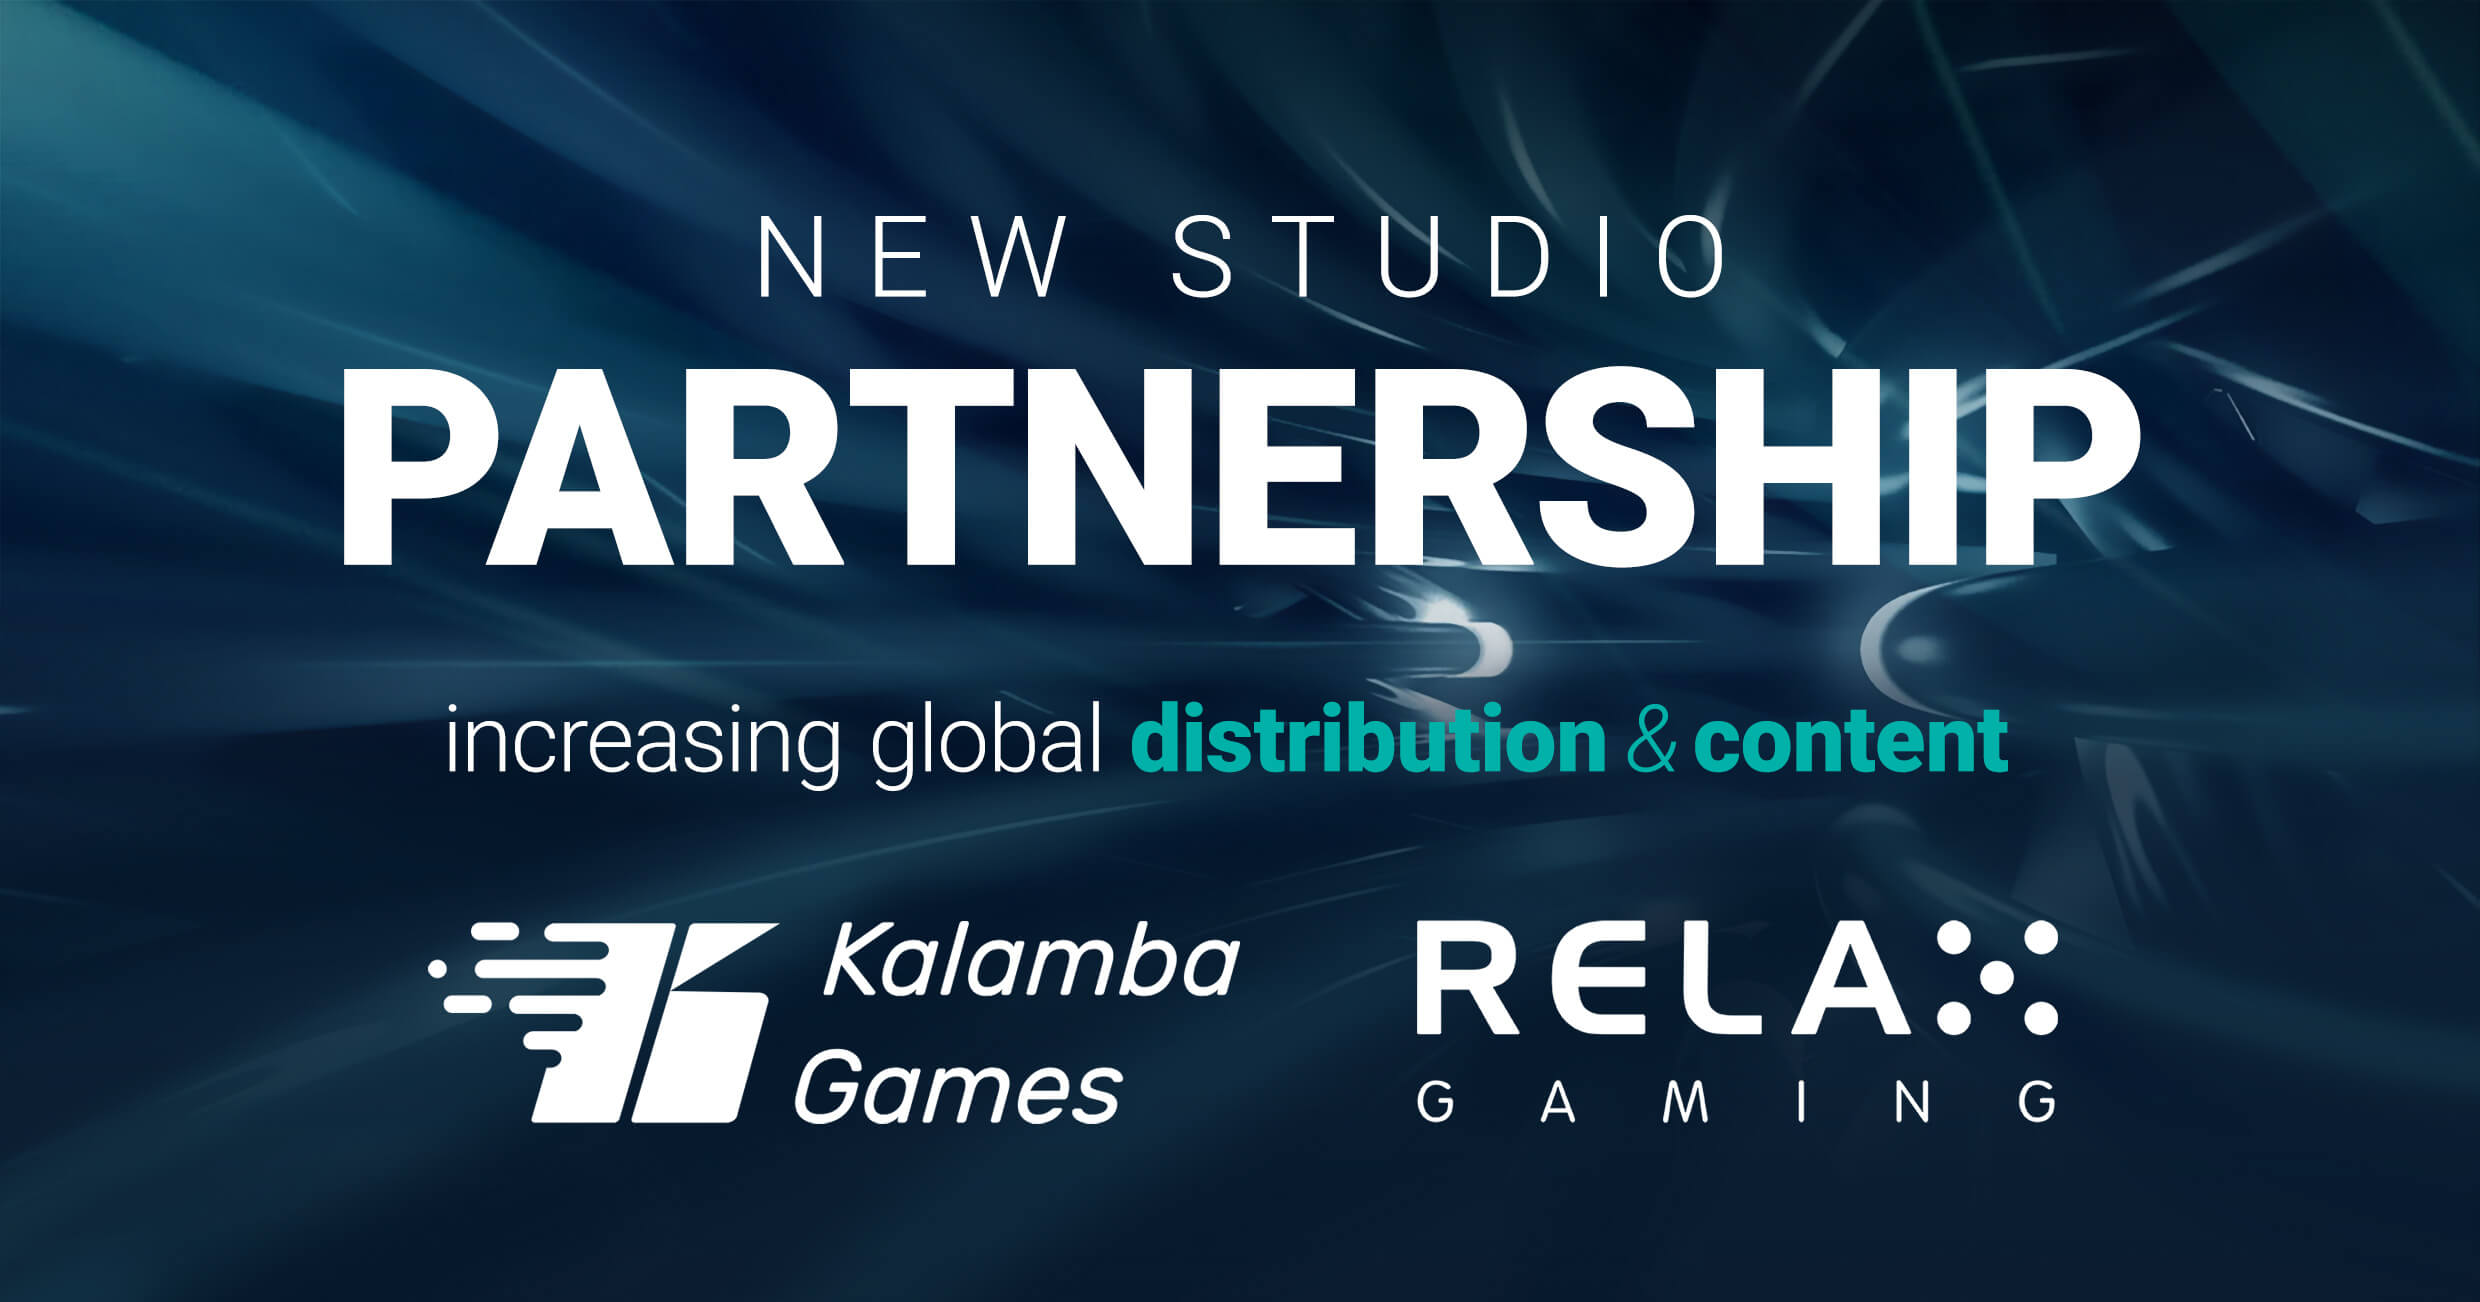 We're thrilled to announce the inaugural Silver Bullet game launch from our latest partner, Kalamba Games.